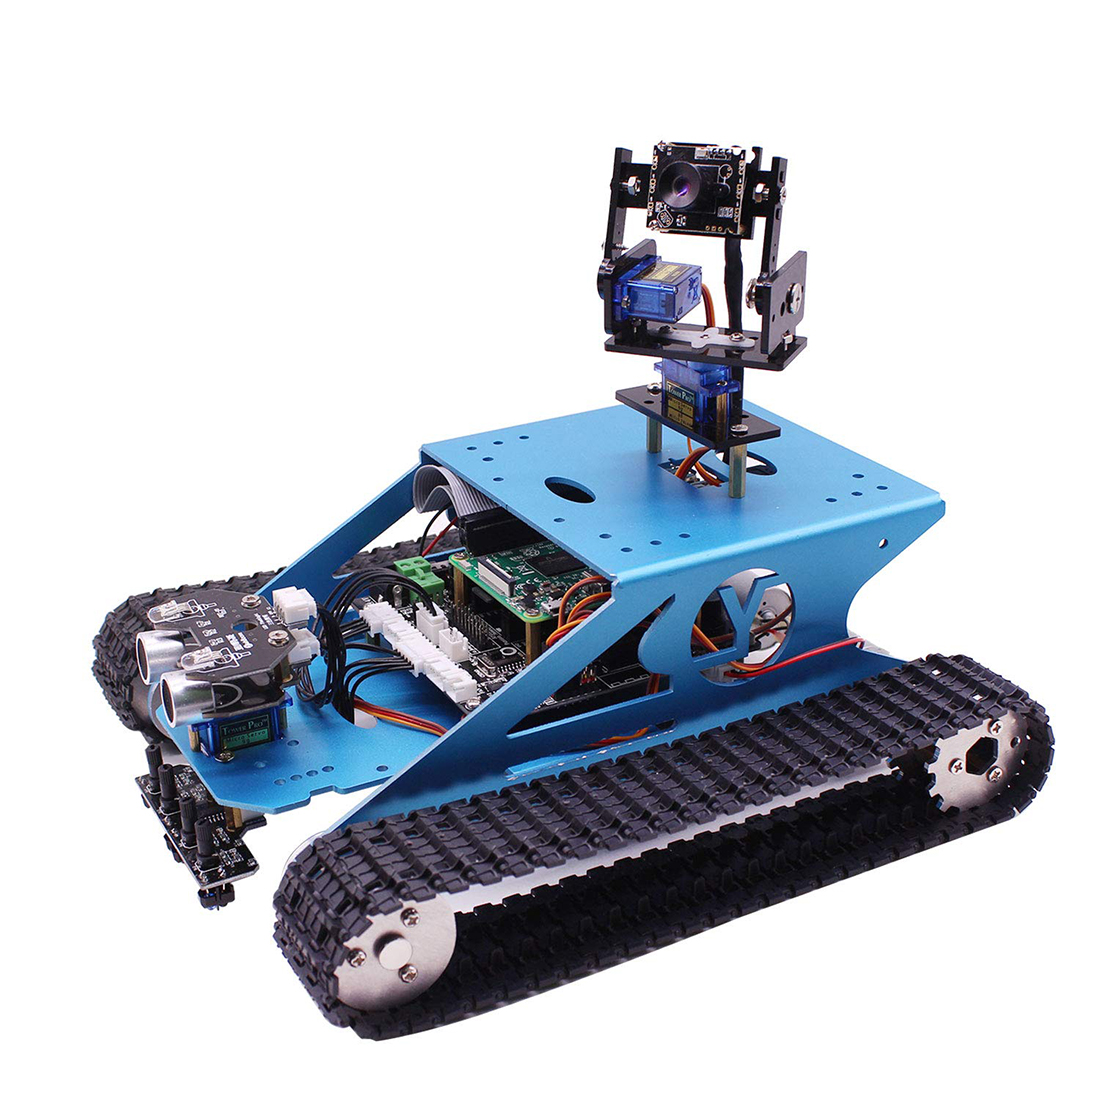 Tracked Tank Smart Robotic Kit Bluetooth Video Programming Electronic Toy DIY Self-balance Car Robot Kit With Raspberry 4B(4G)